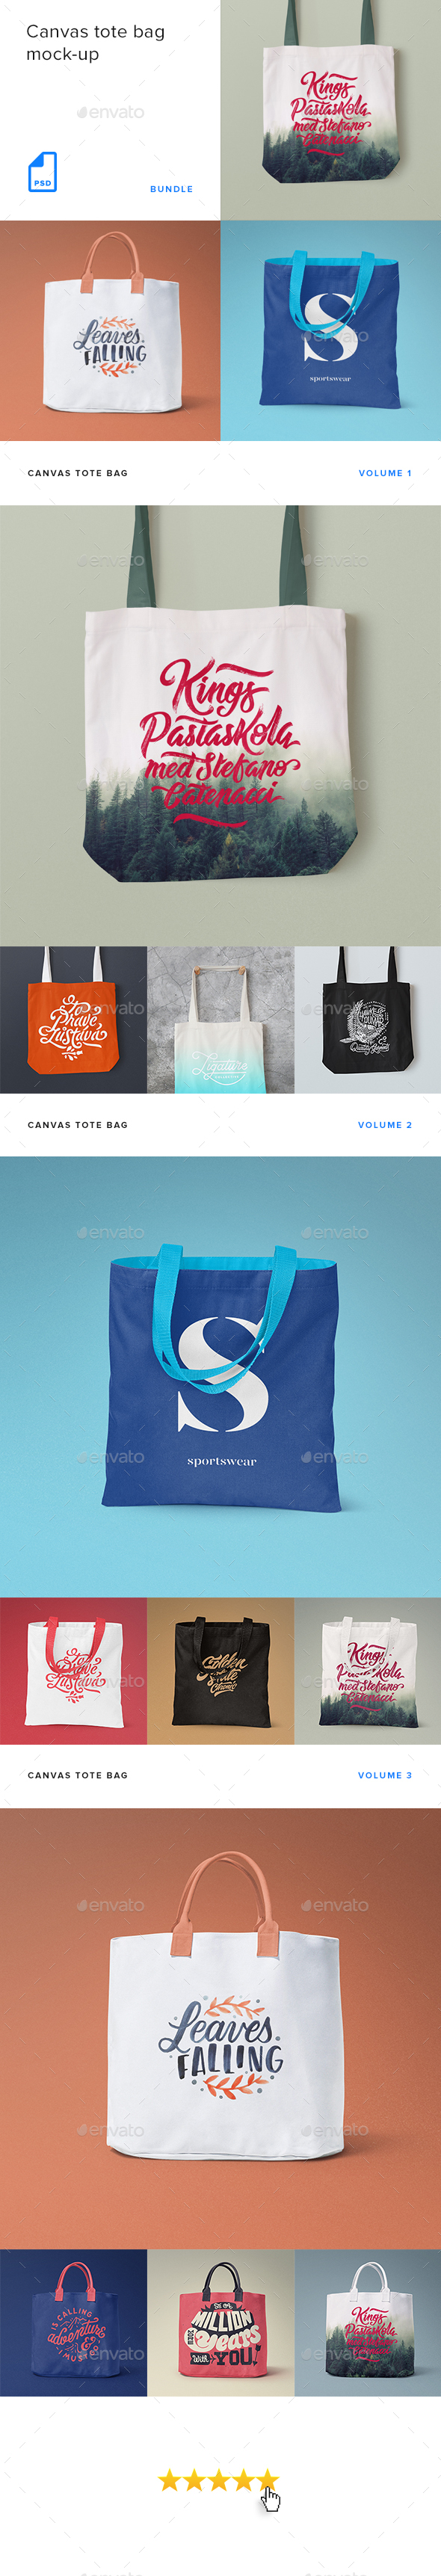 GraphicRiver Canvas Tote Bag Mock-up Bundle 20490585